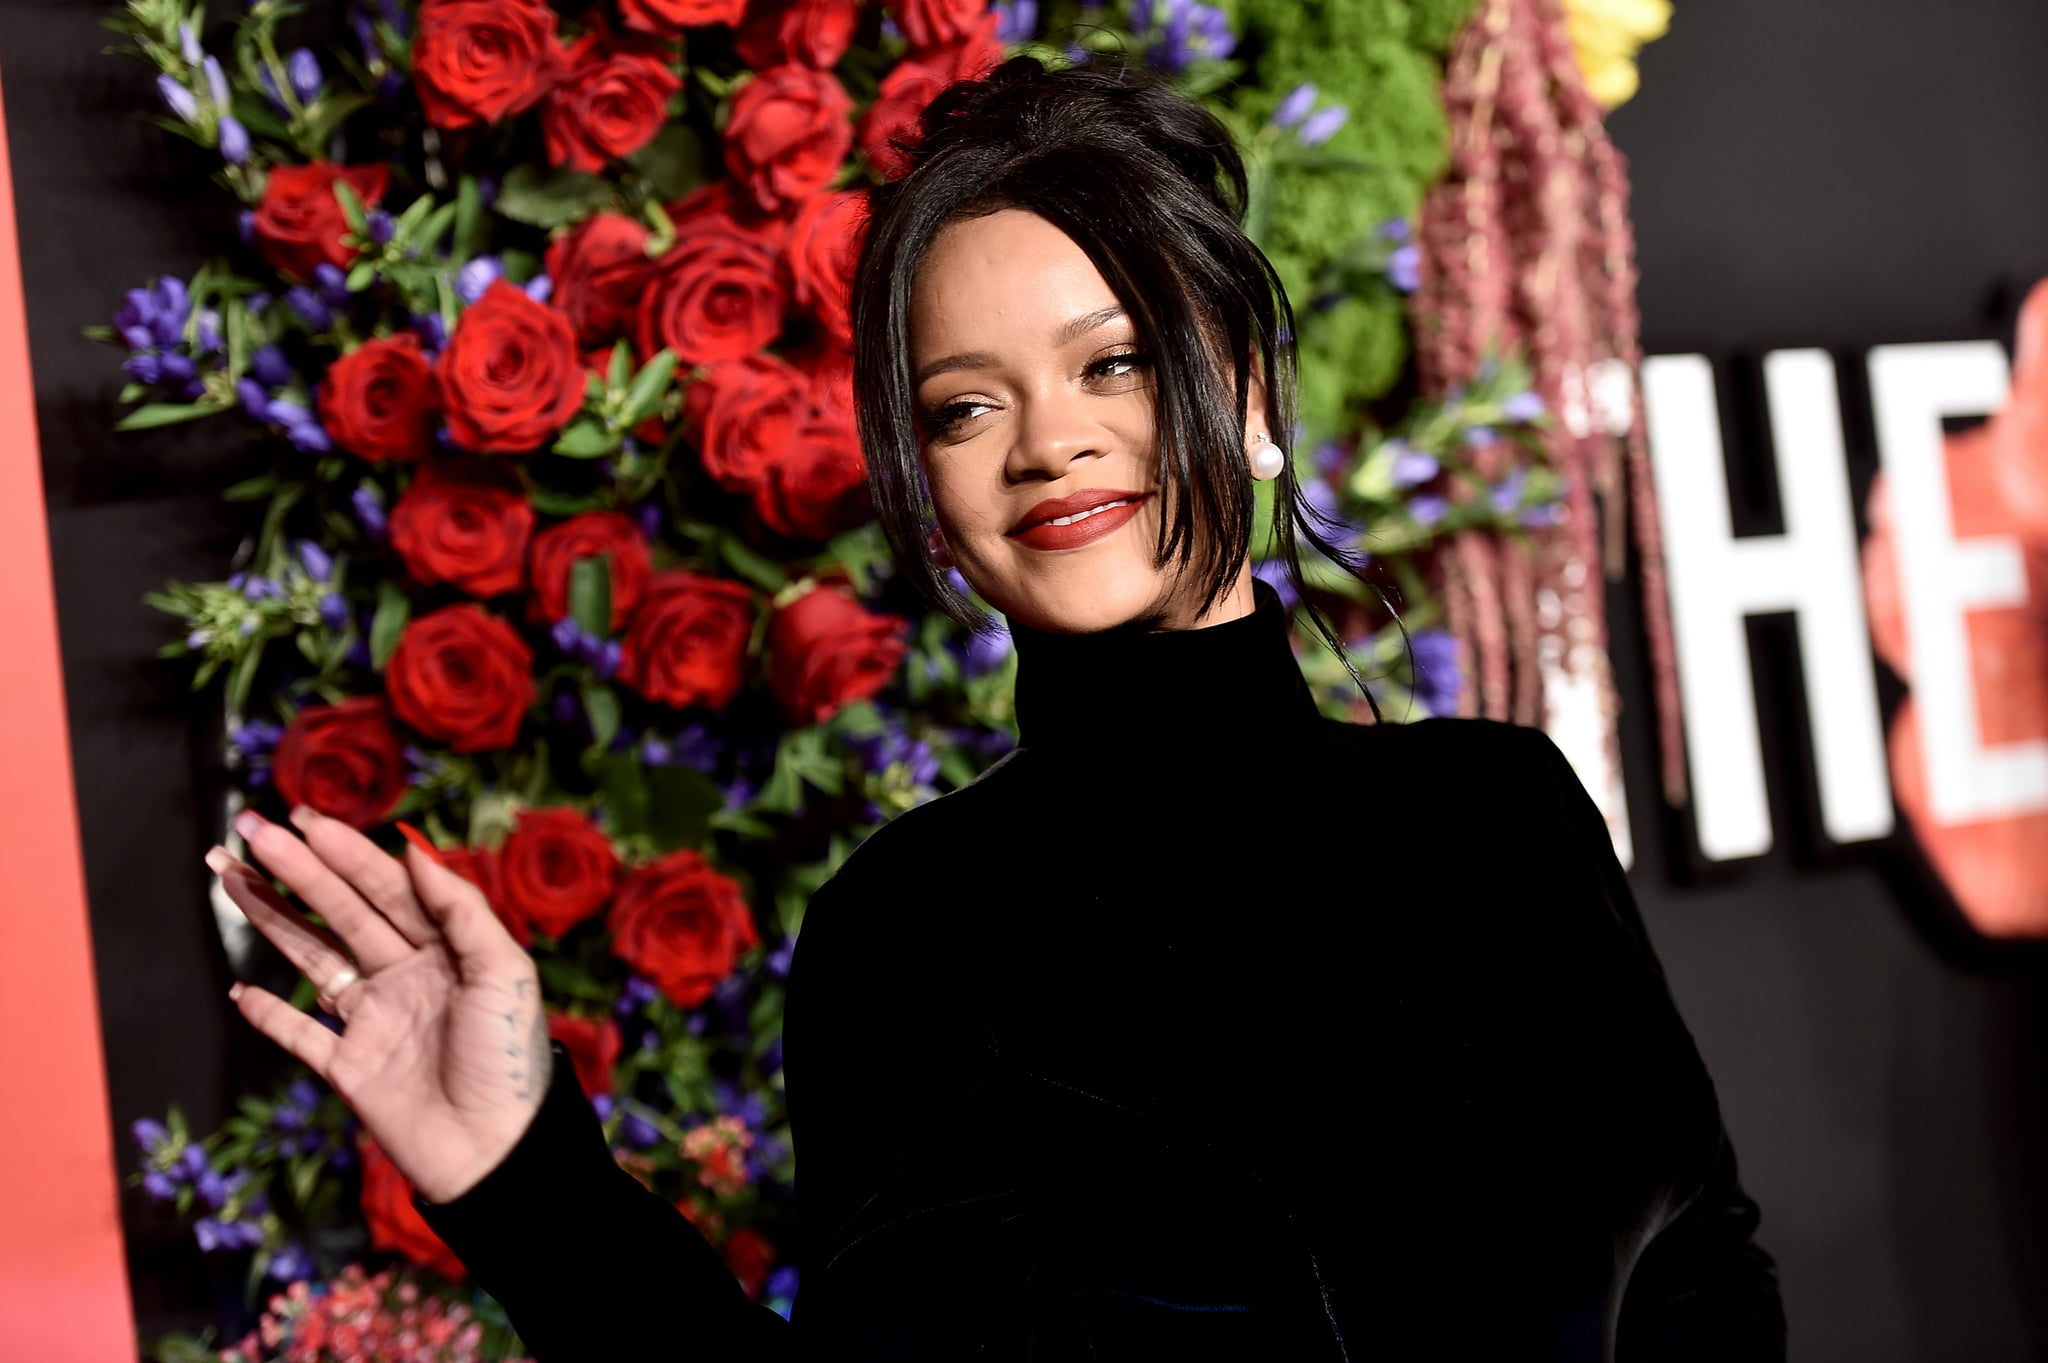 NEW YORK, NEW YORK - SEPTEMBER 12: Rihanna attends Rihanna's 5th Annual Diamond Ball at Cipriani Wall Street on September 12, 2019 in New York City. (Photo by Steven Ferdman/Getty Images)